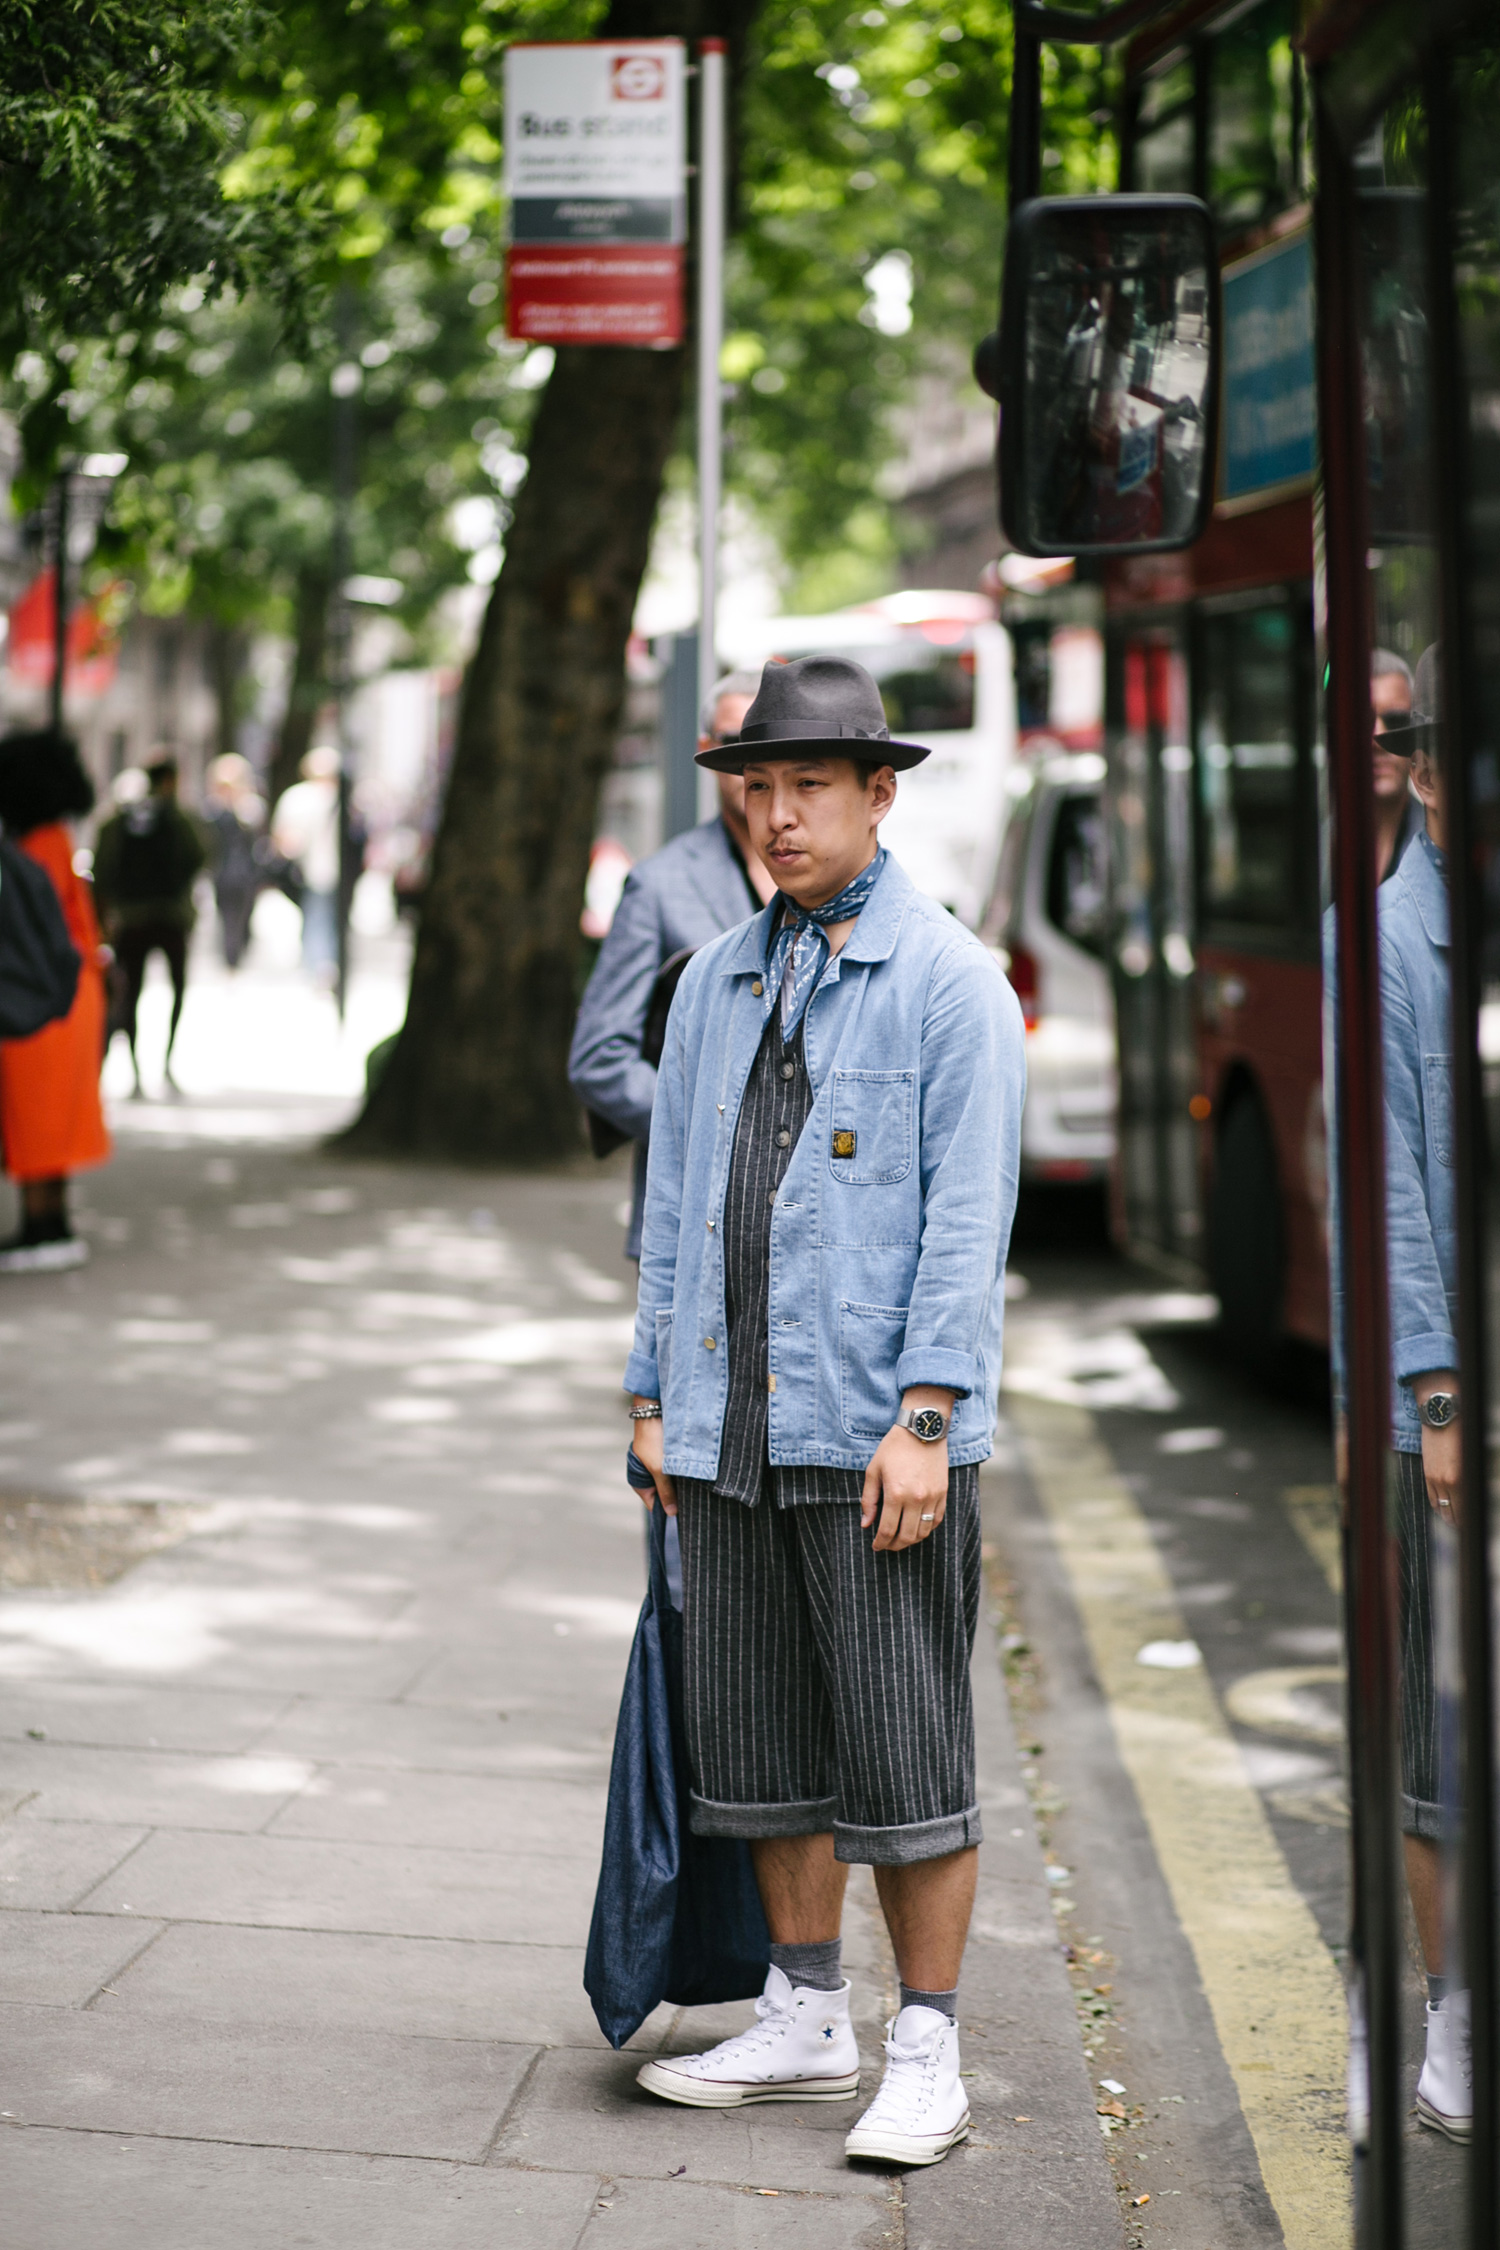 074-London-Mens-Street-Style.jpg